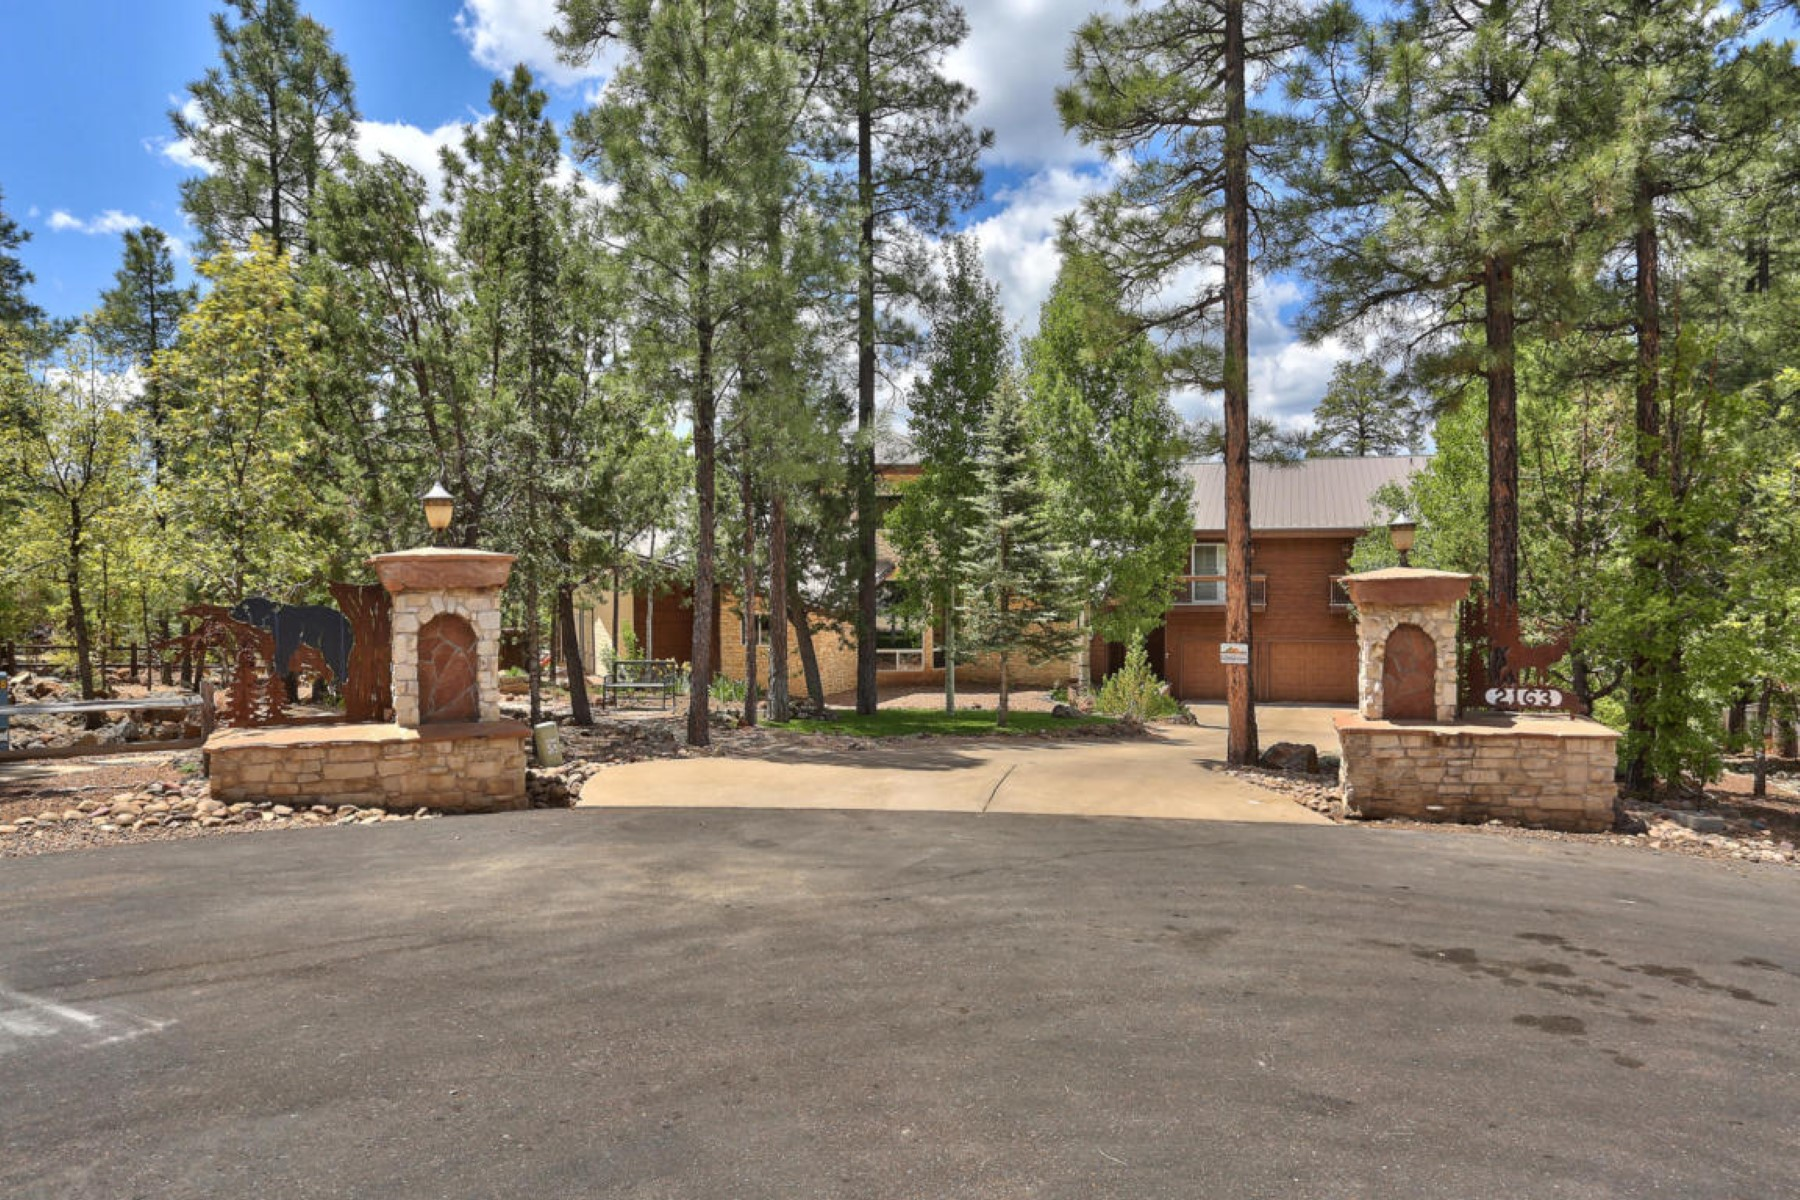 Einfamilienhaus für Verkauf beim Spectacular estate conveniently located in gated community of Pineridge 2163 Creekside Court Pinetop, Arizona, 85935 Vereinigte Staaten